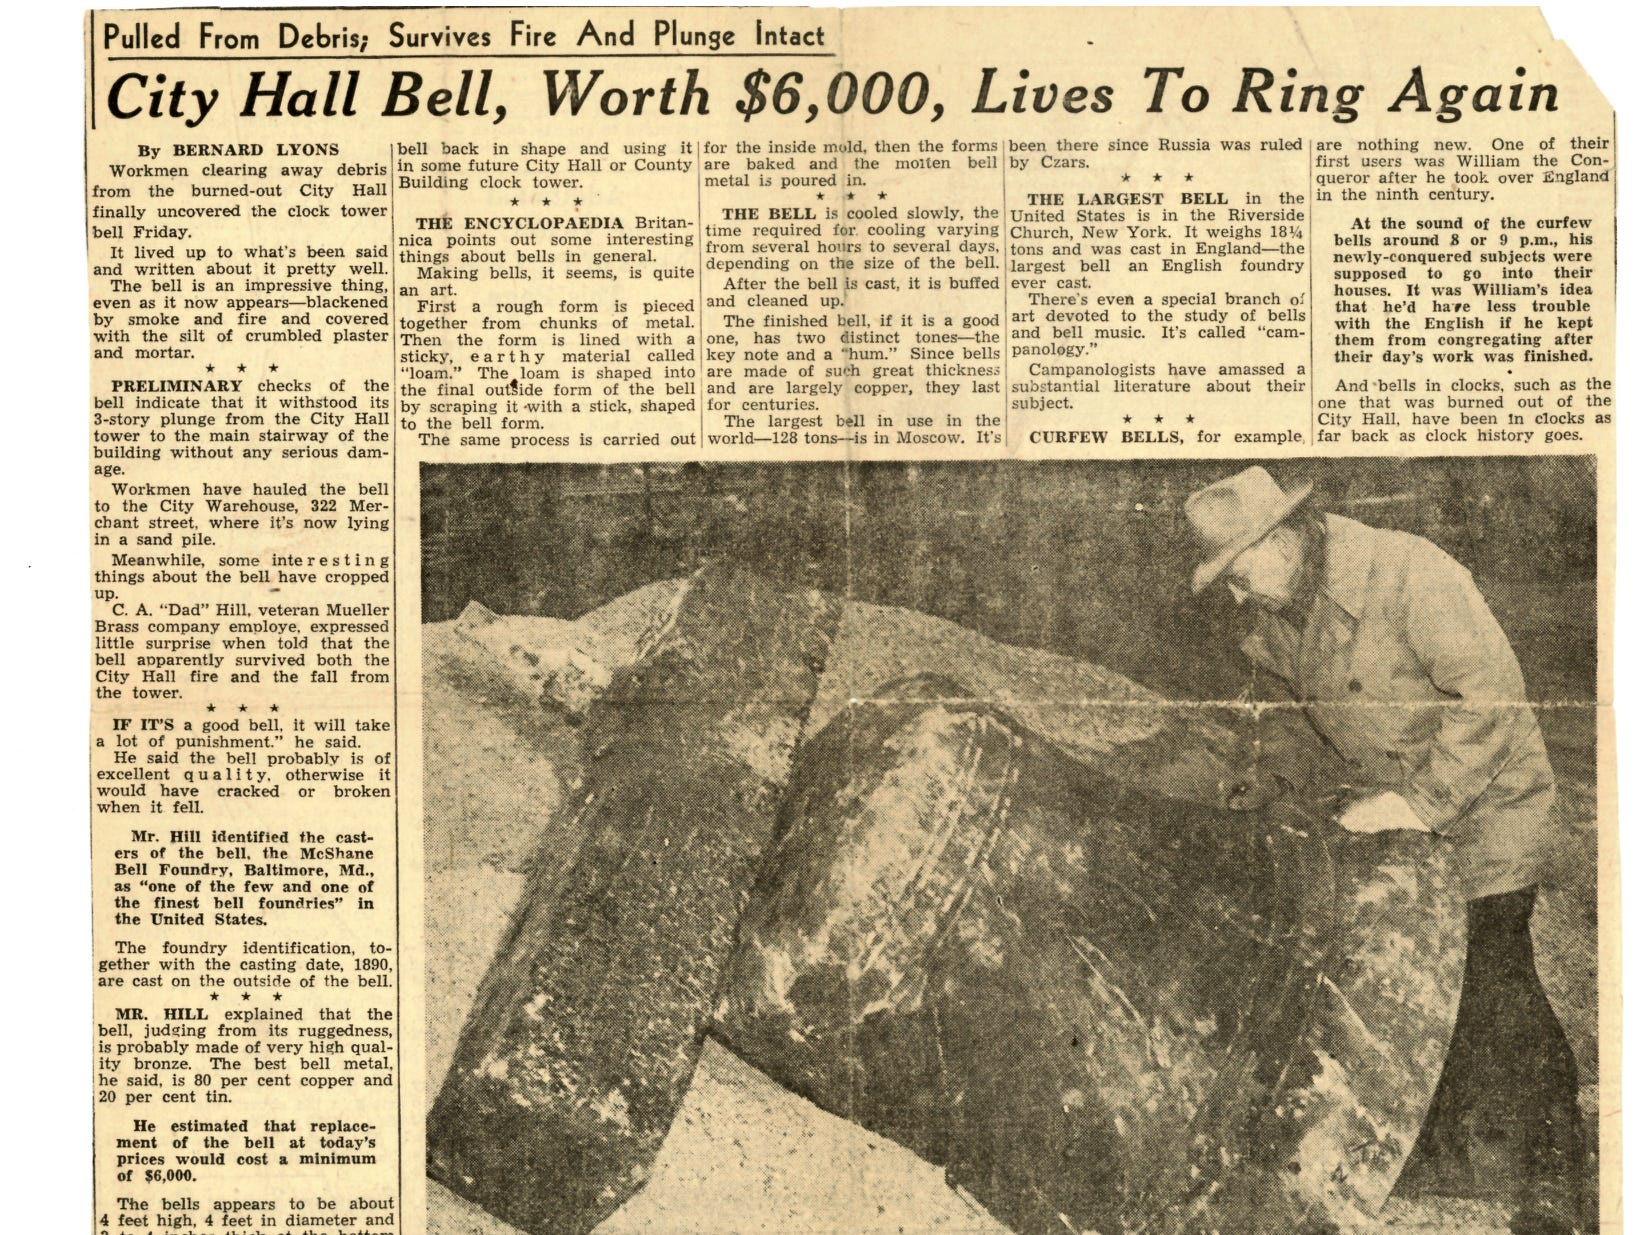 Another clipping from an unknown date in 1949 talks about the discovery of the bell, which fell three stories from the tower to the main stairway of the building. The bell didn't sustain any serious damage from its fall.